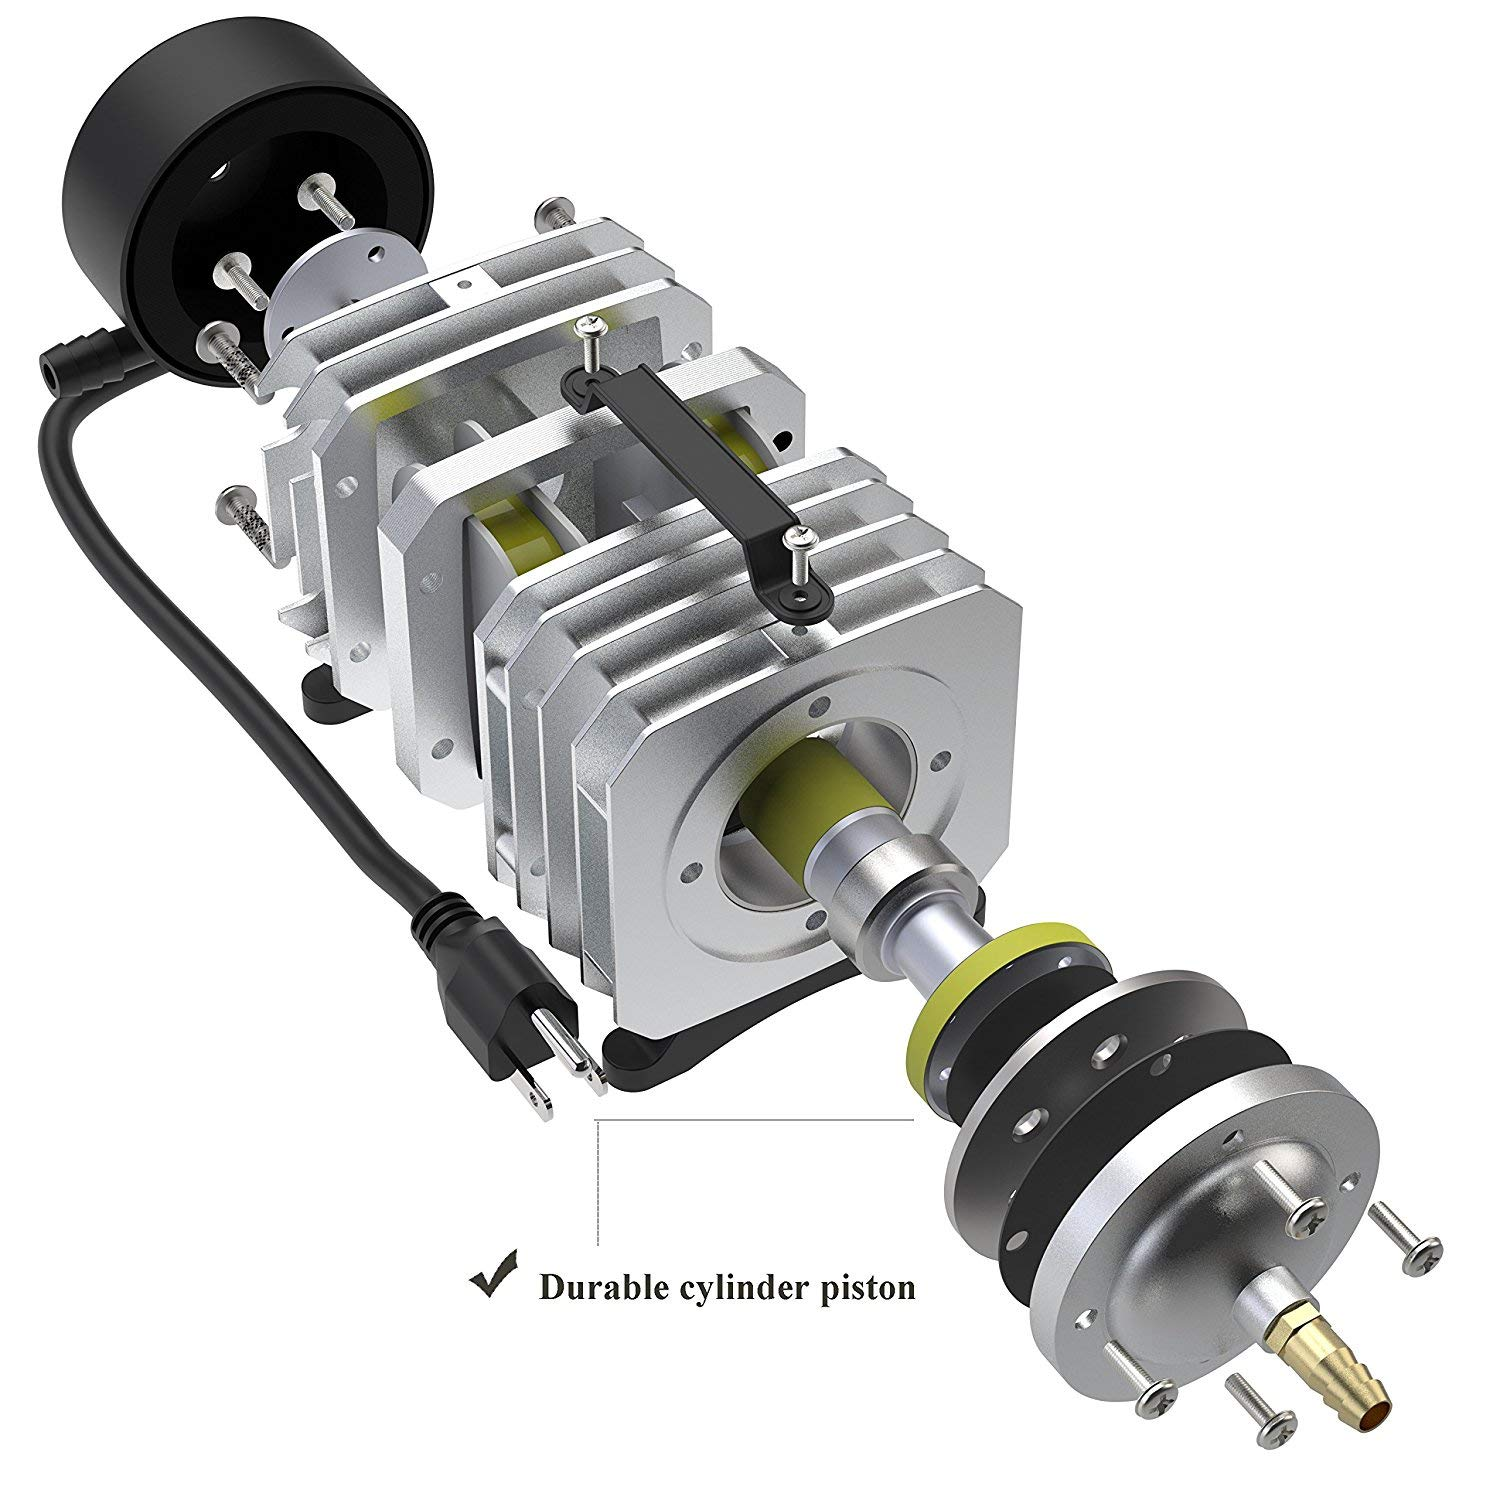 Hydroponic Systems Air Pump for Fish Tank 950 GPH 32W 6 Outlet Commercial